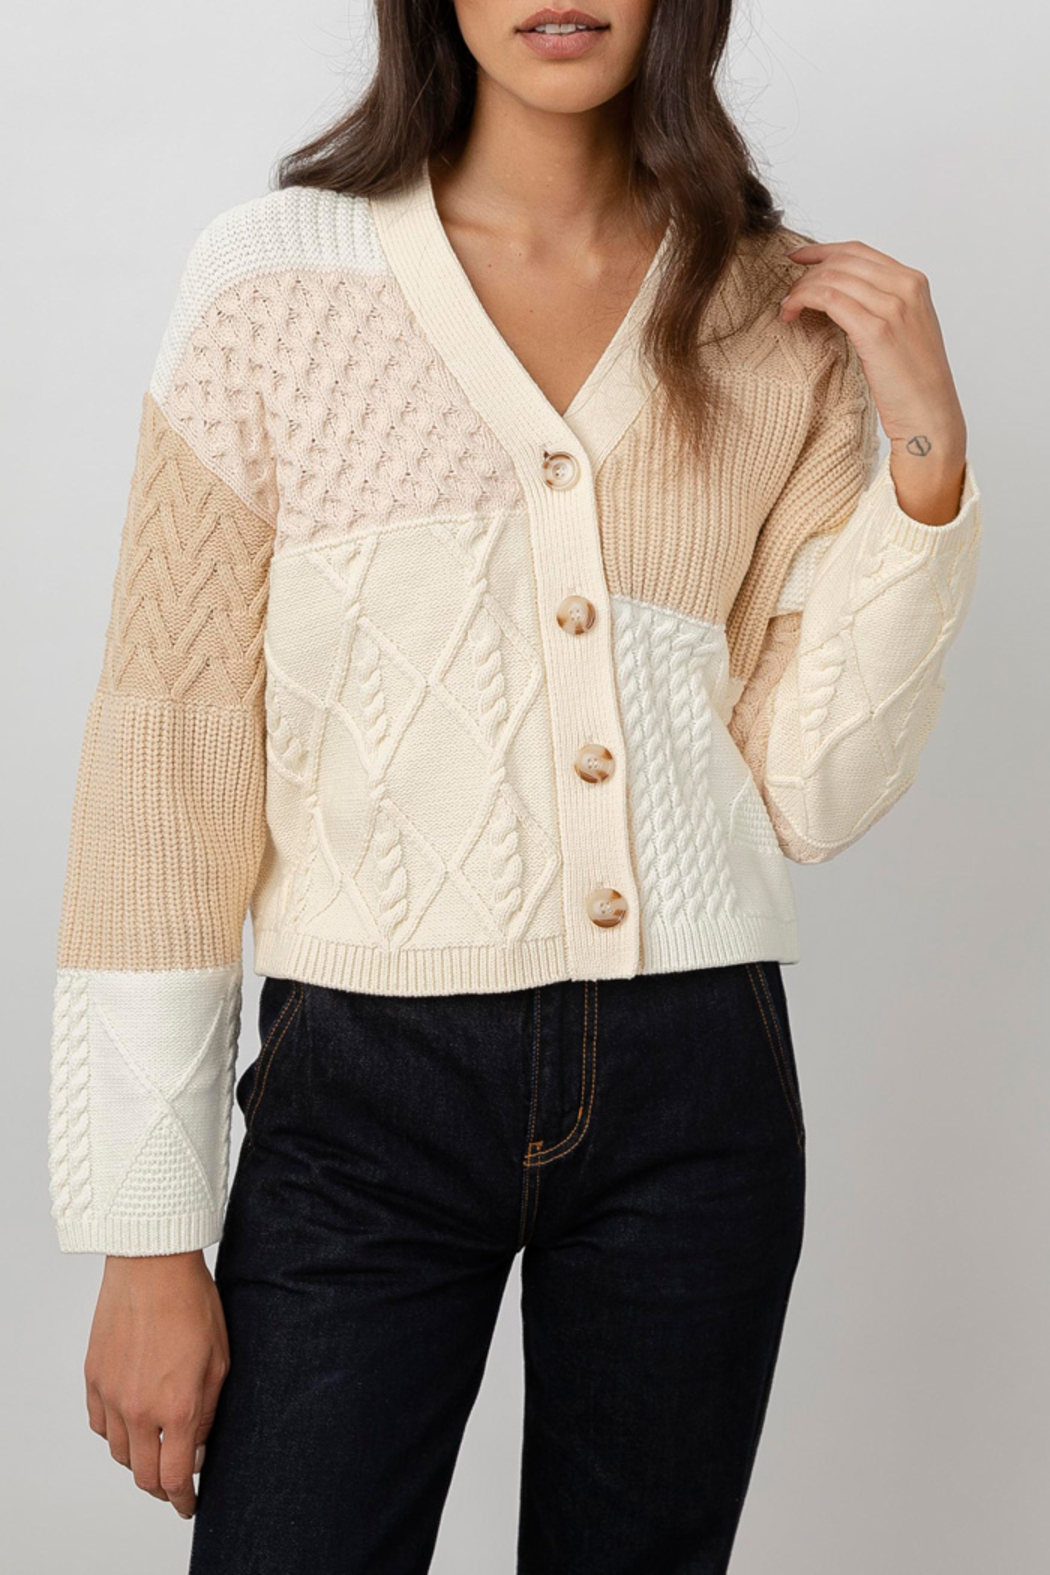 Rails Clothing Reese Patchwork Cable Cardigan - Main Image